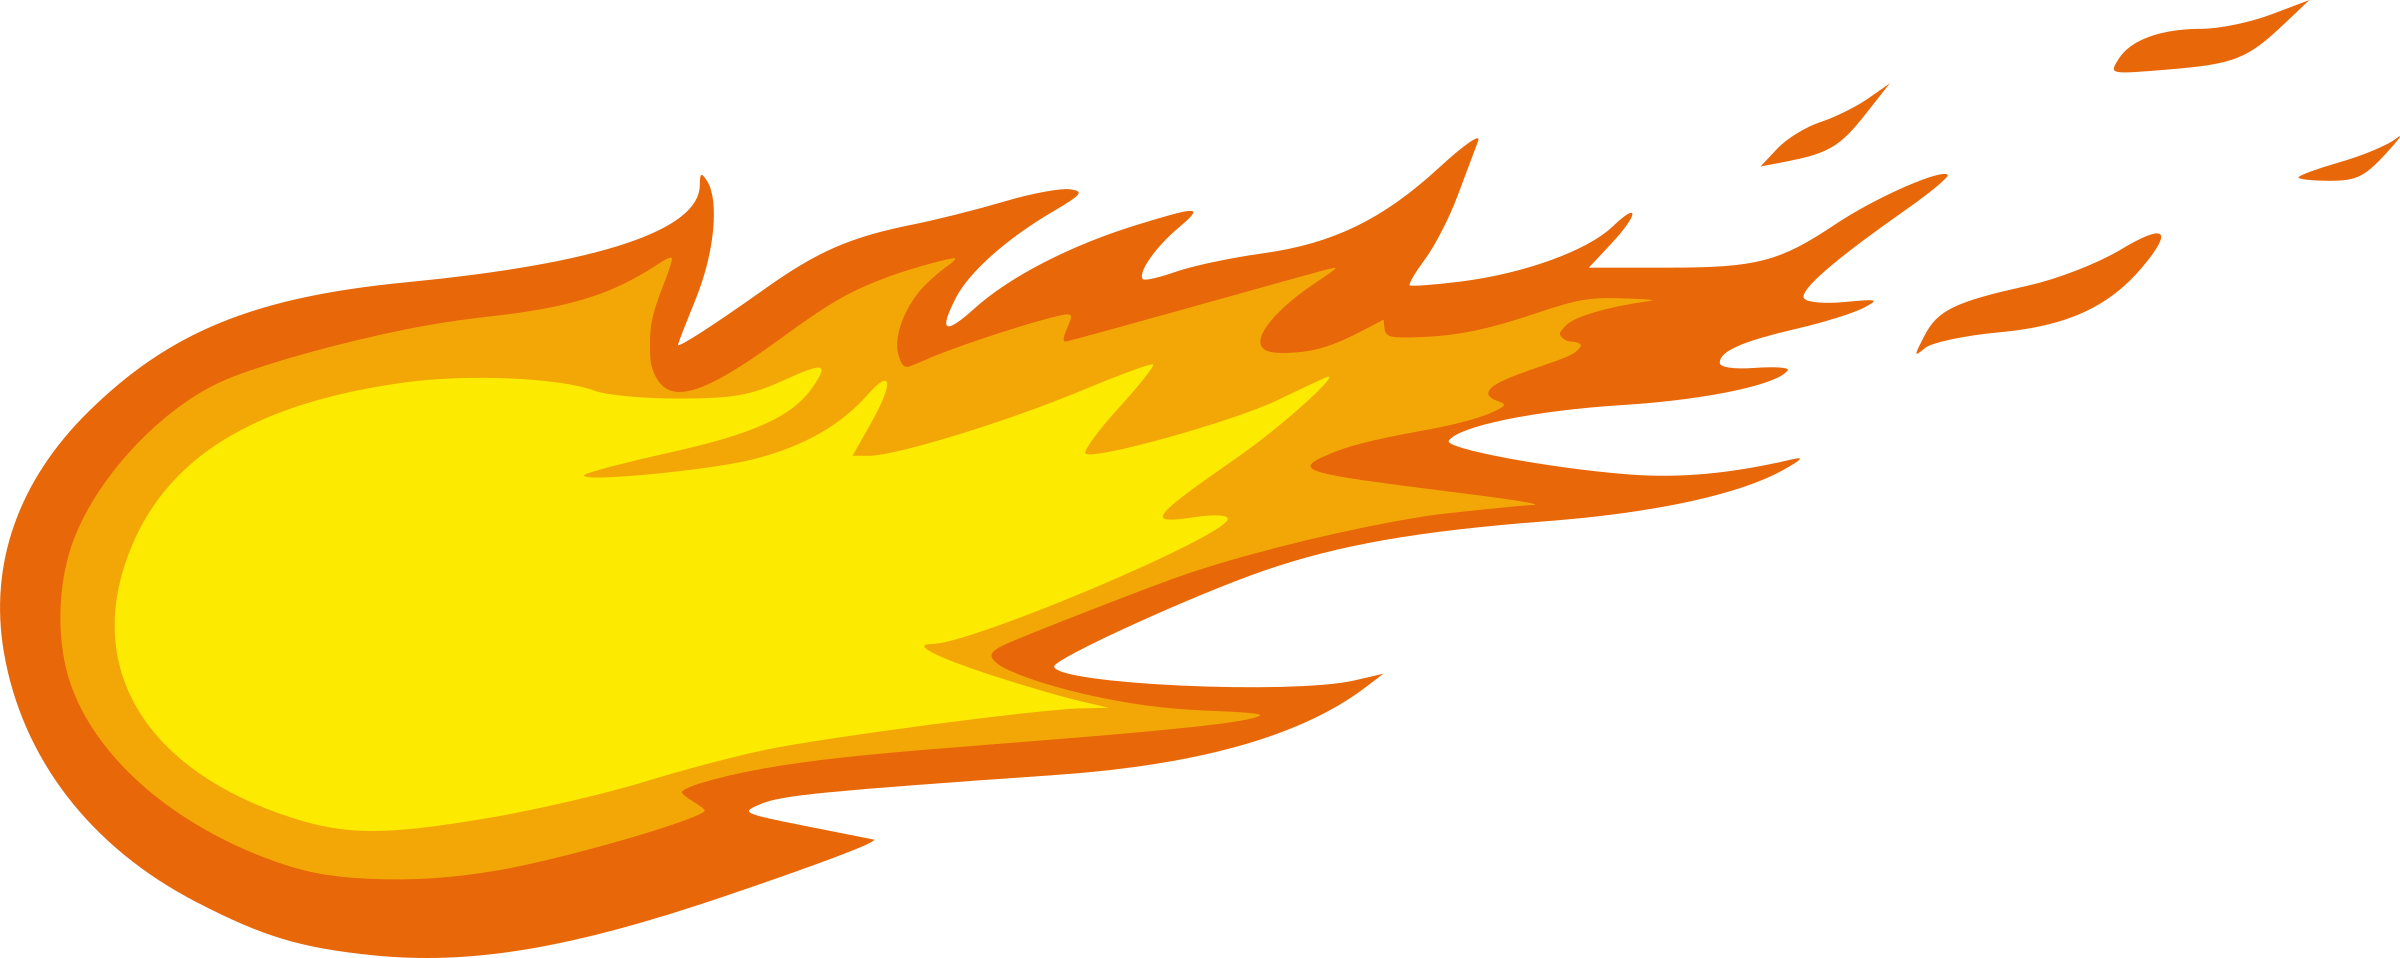 Meteorite pencil and in. Asteroid clipart fire